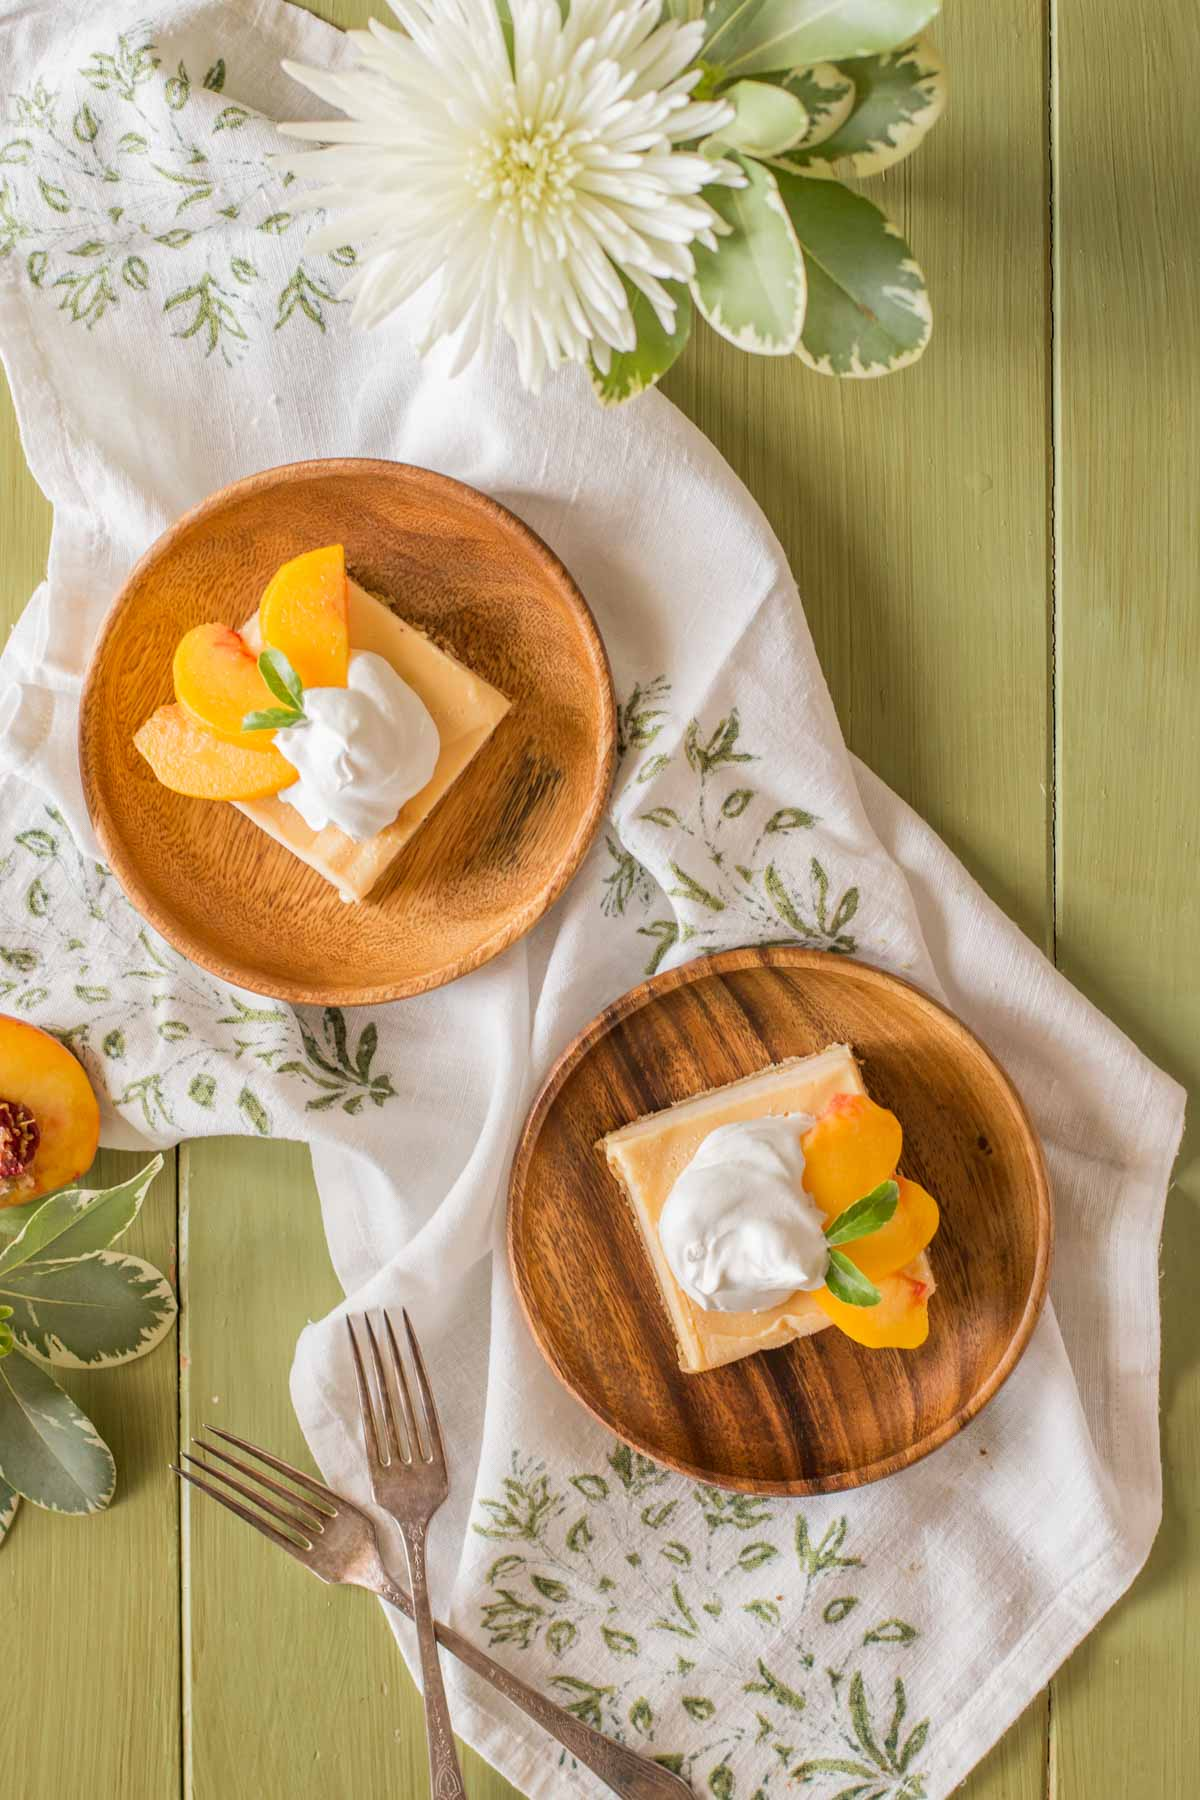 Two wood plates, each with an Easy Homemade Peach Ice Cream Bar on it, topped with whipped cream and fresh peach slices.